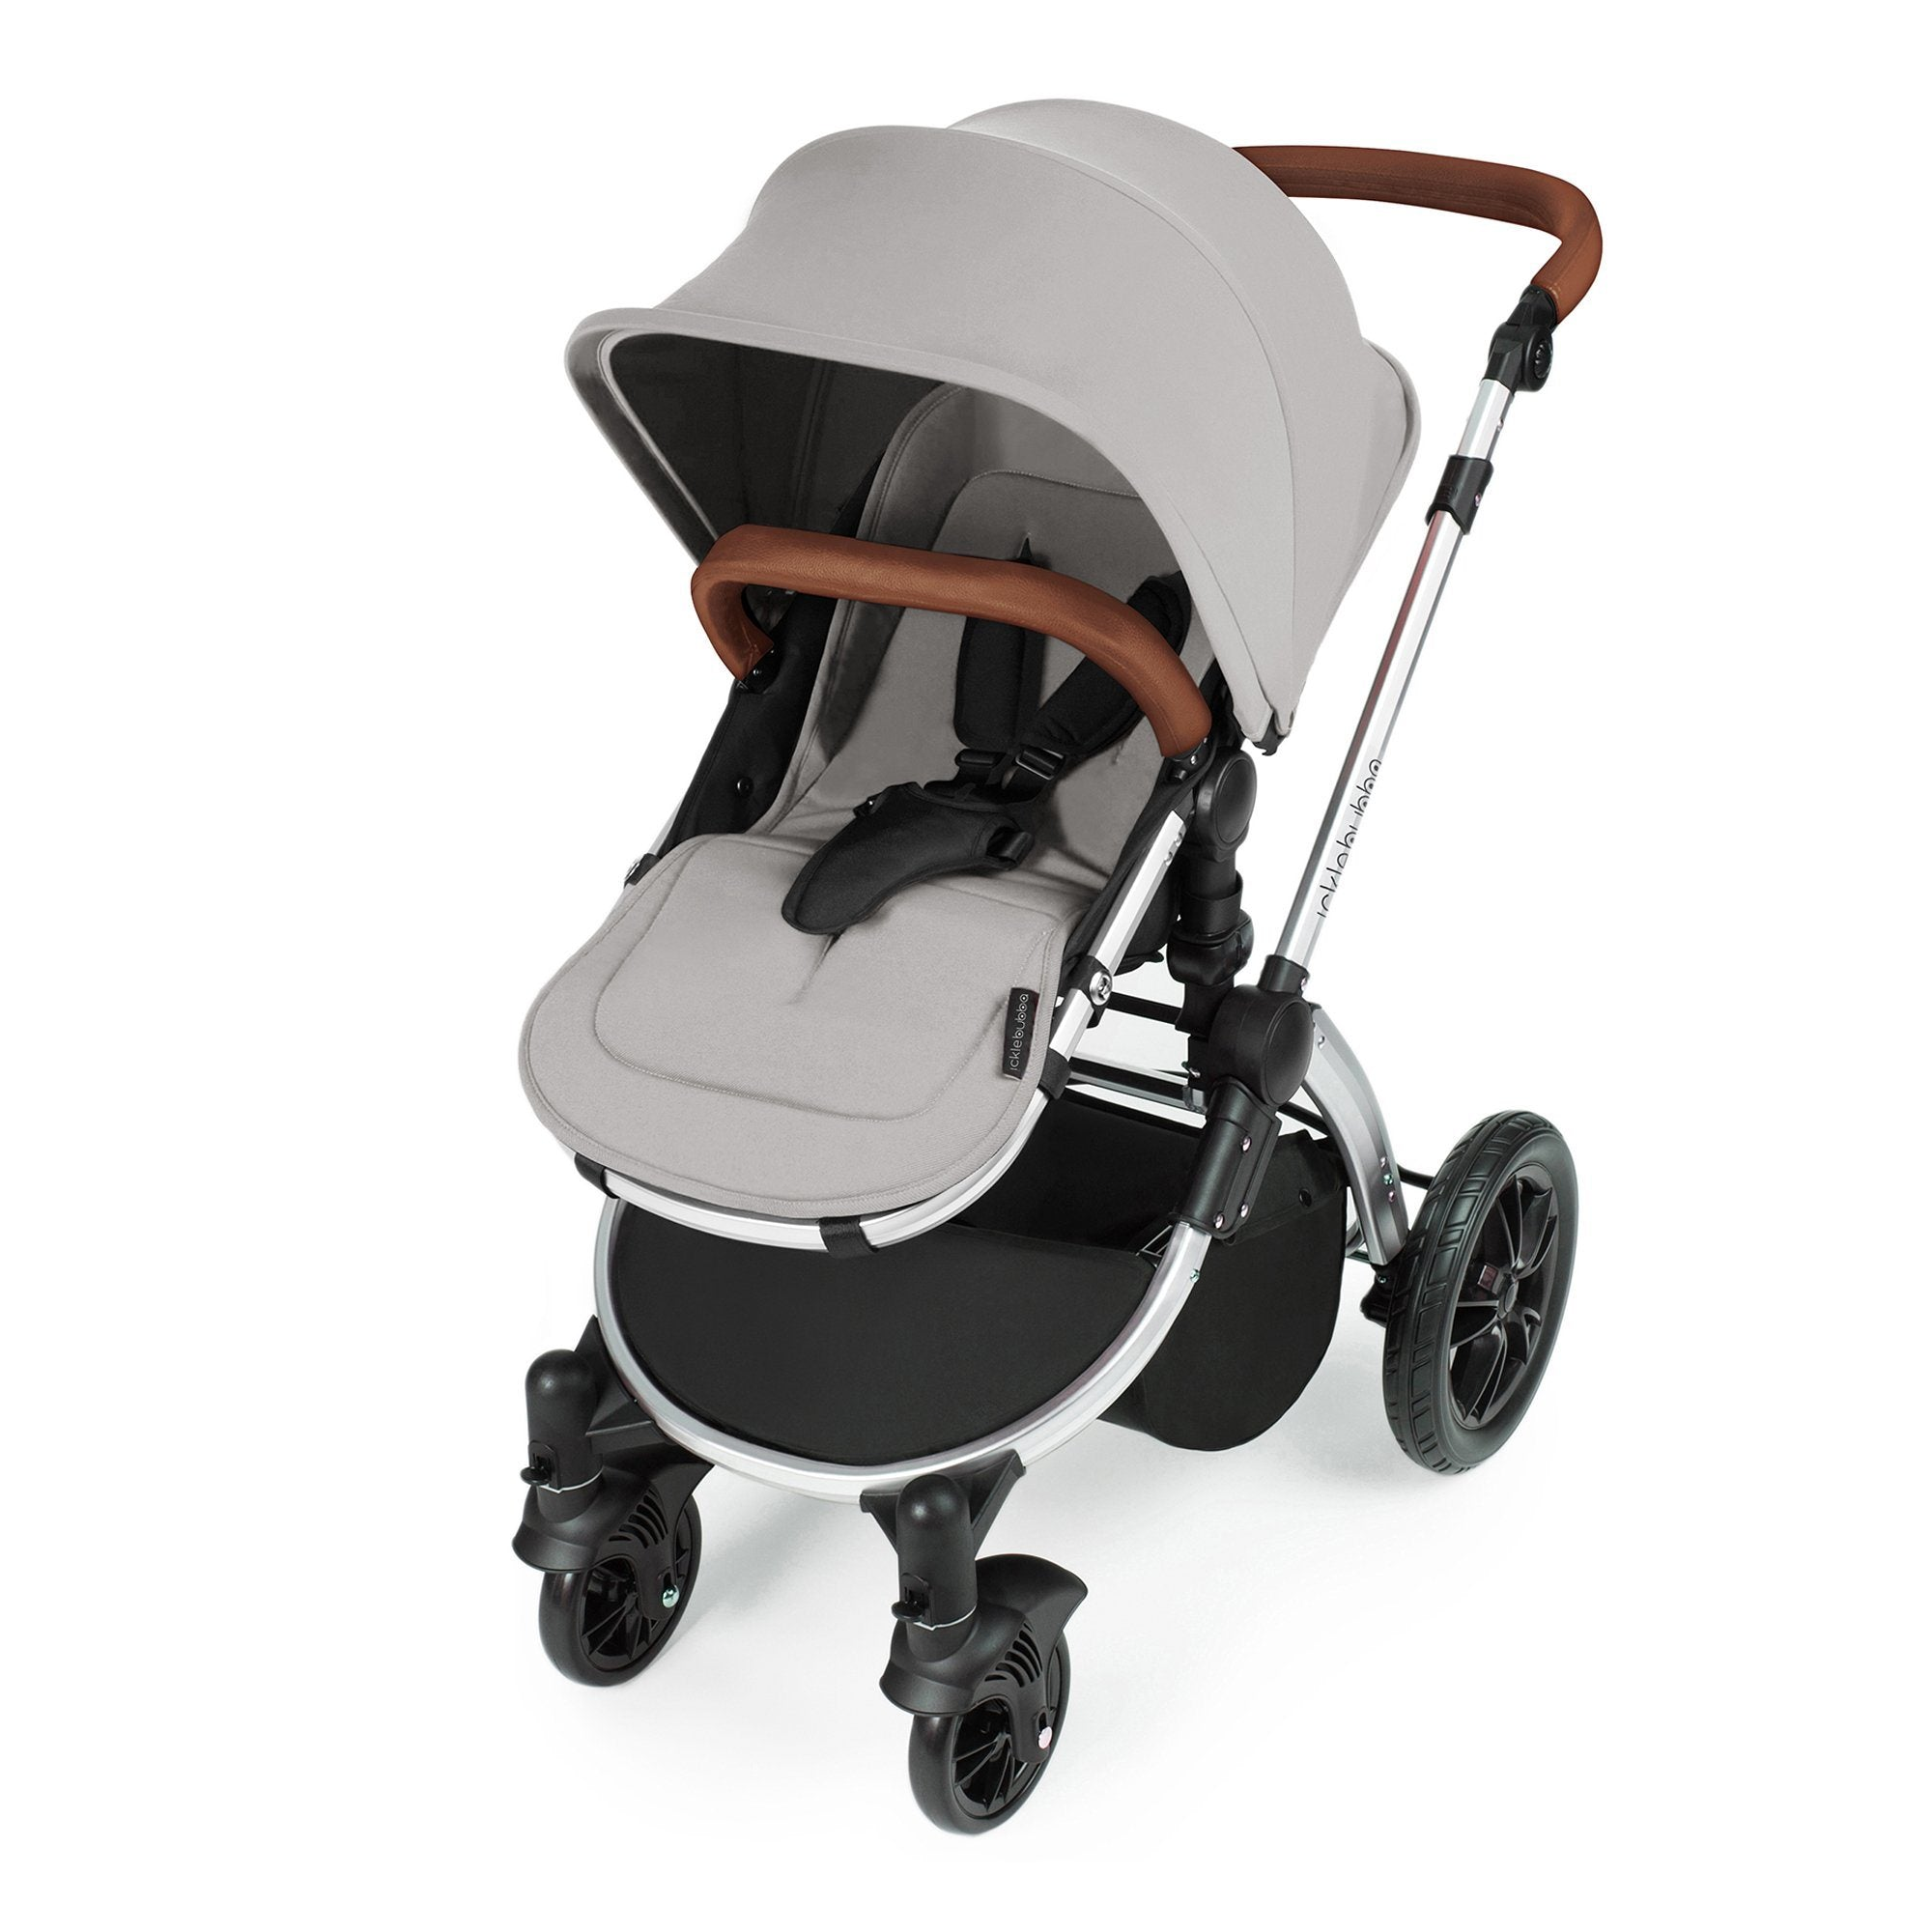 Ickle Bubba Stomp V3 Travel System with ISOFIX Base - Silver on Silver - Pushchair Expert